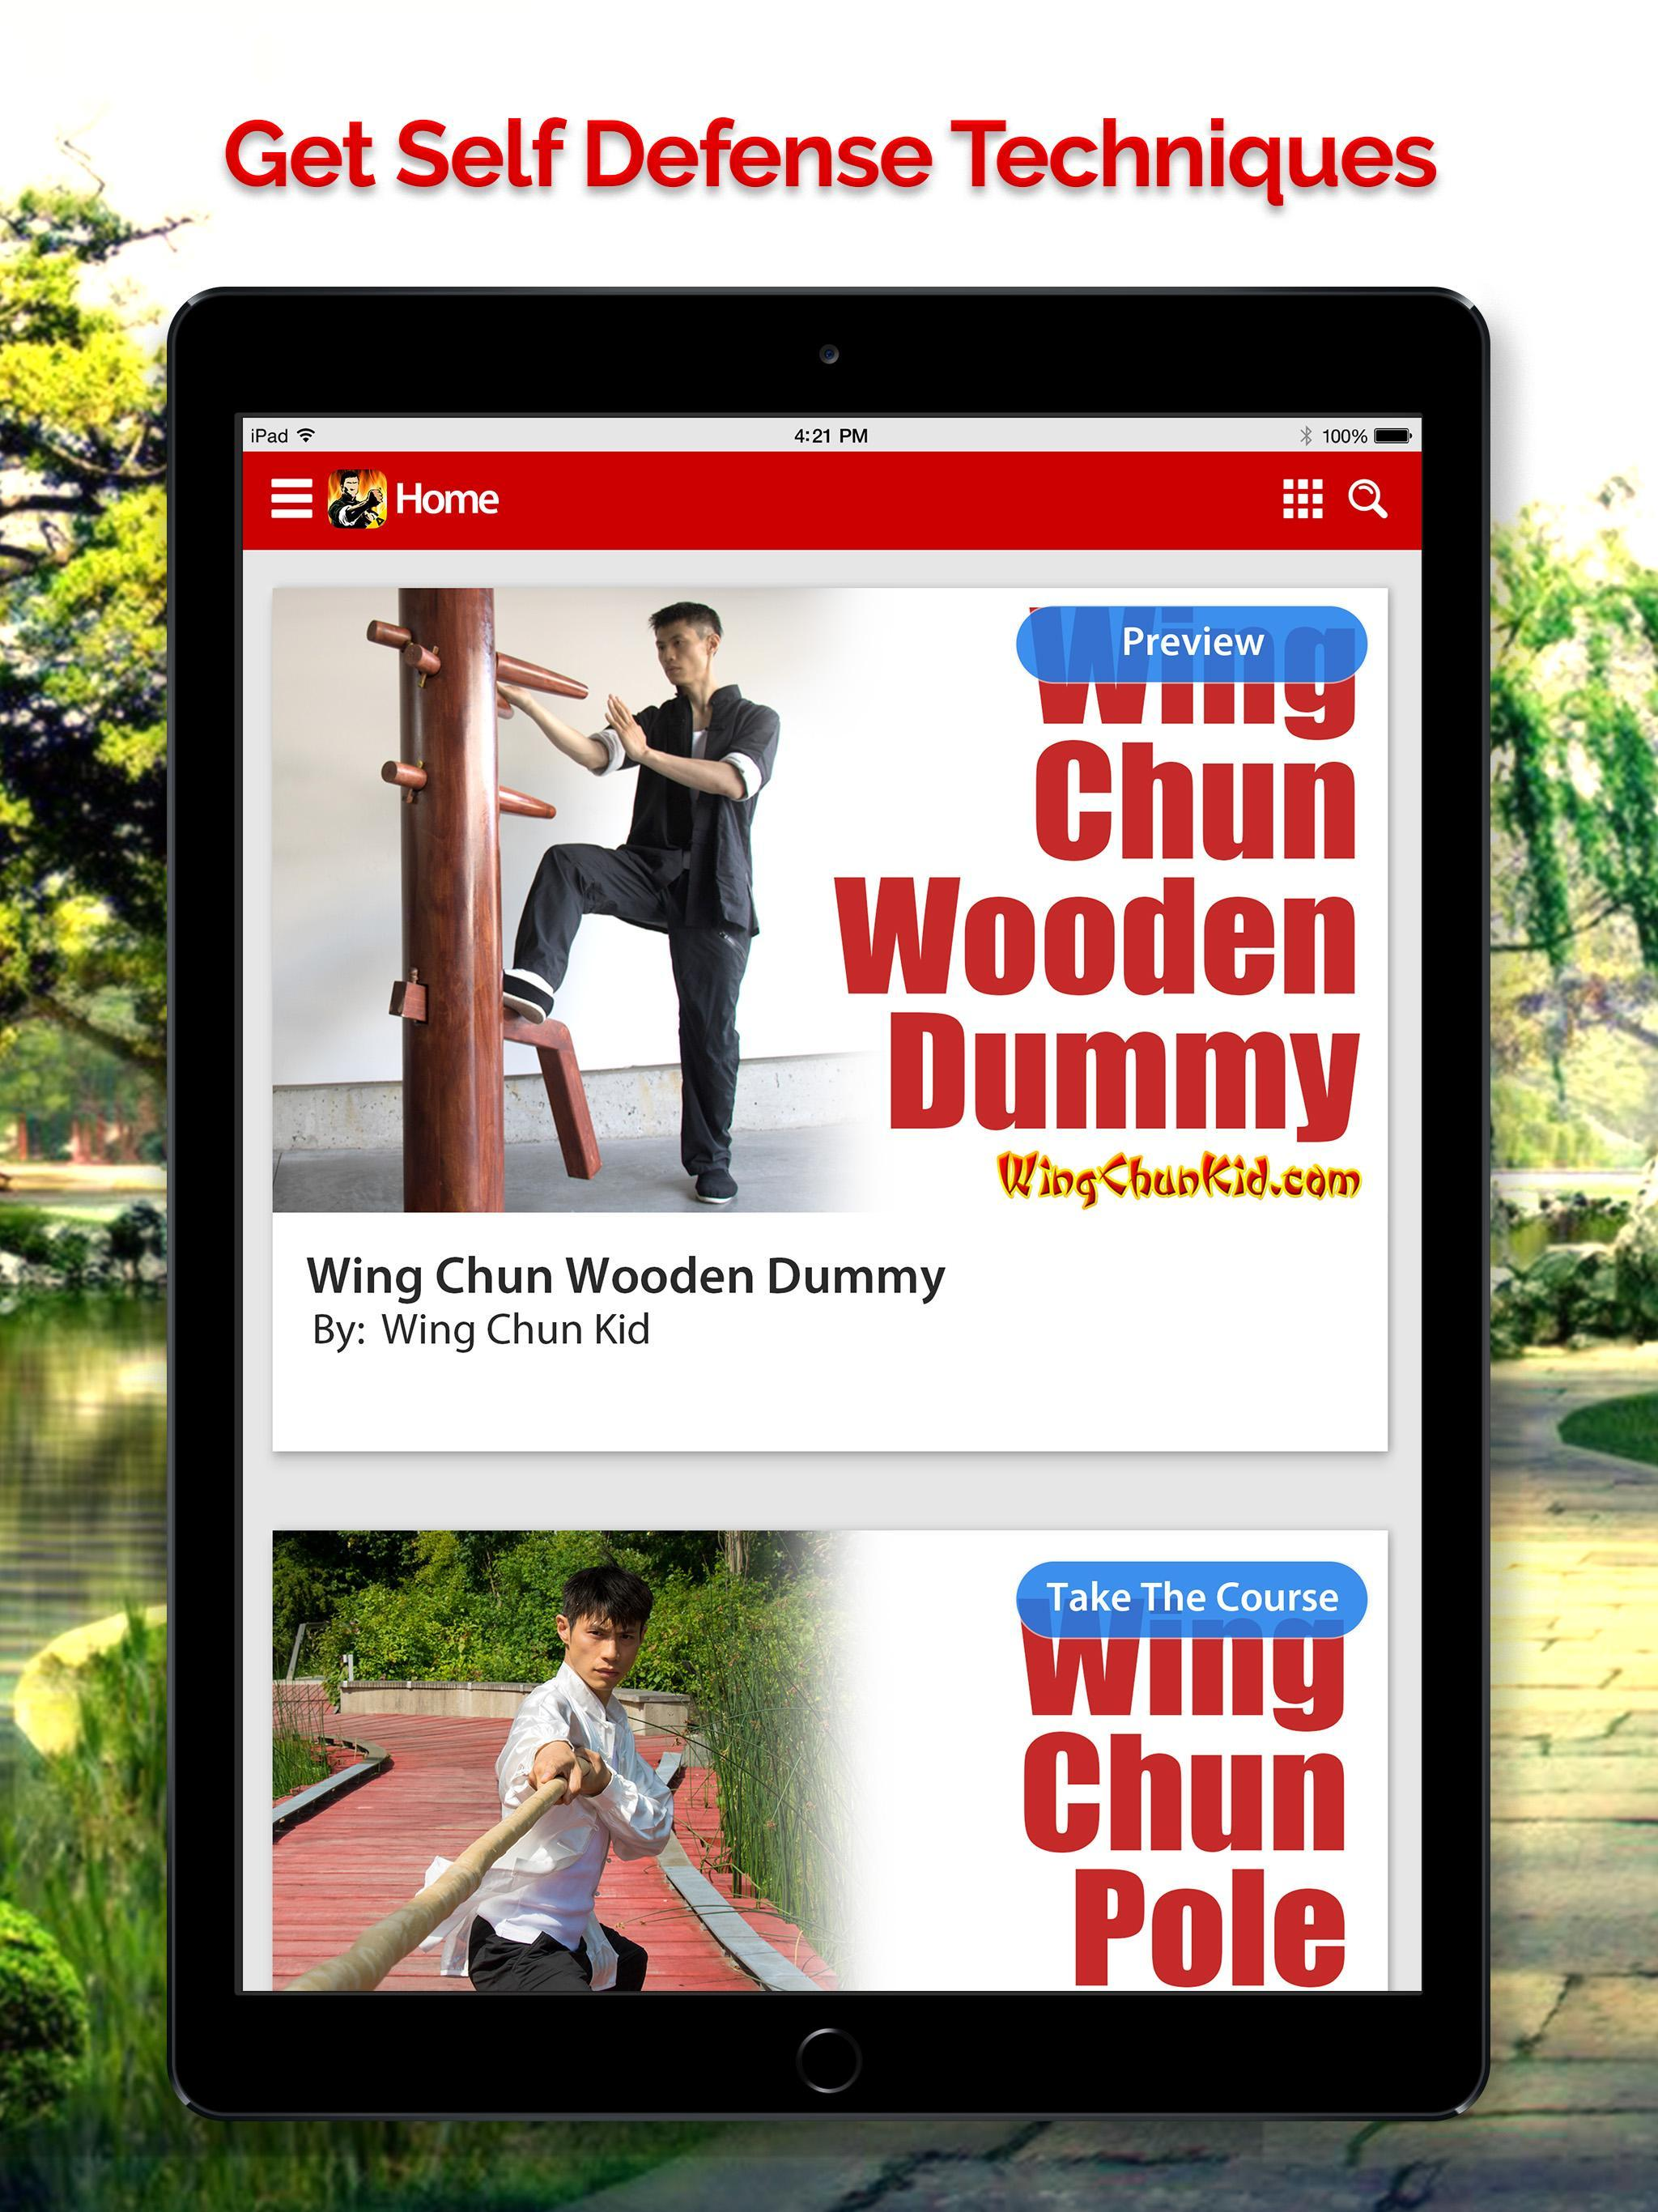 Wing Chun Training Jeet Kune Do Learn Self Defense for